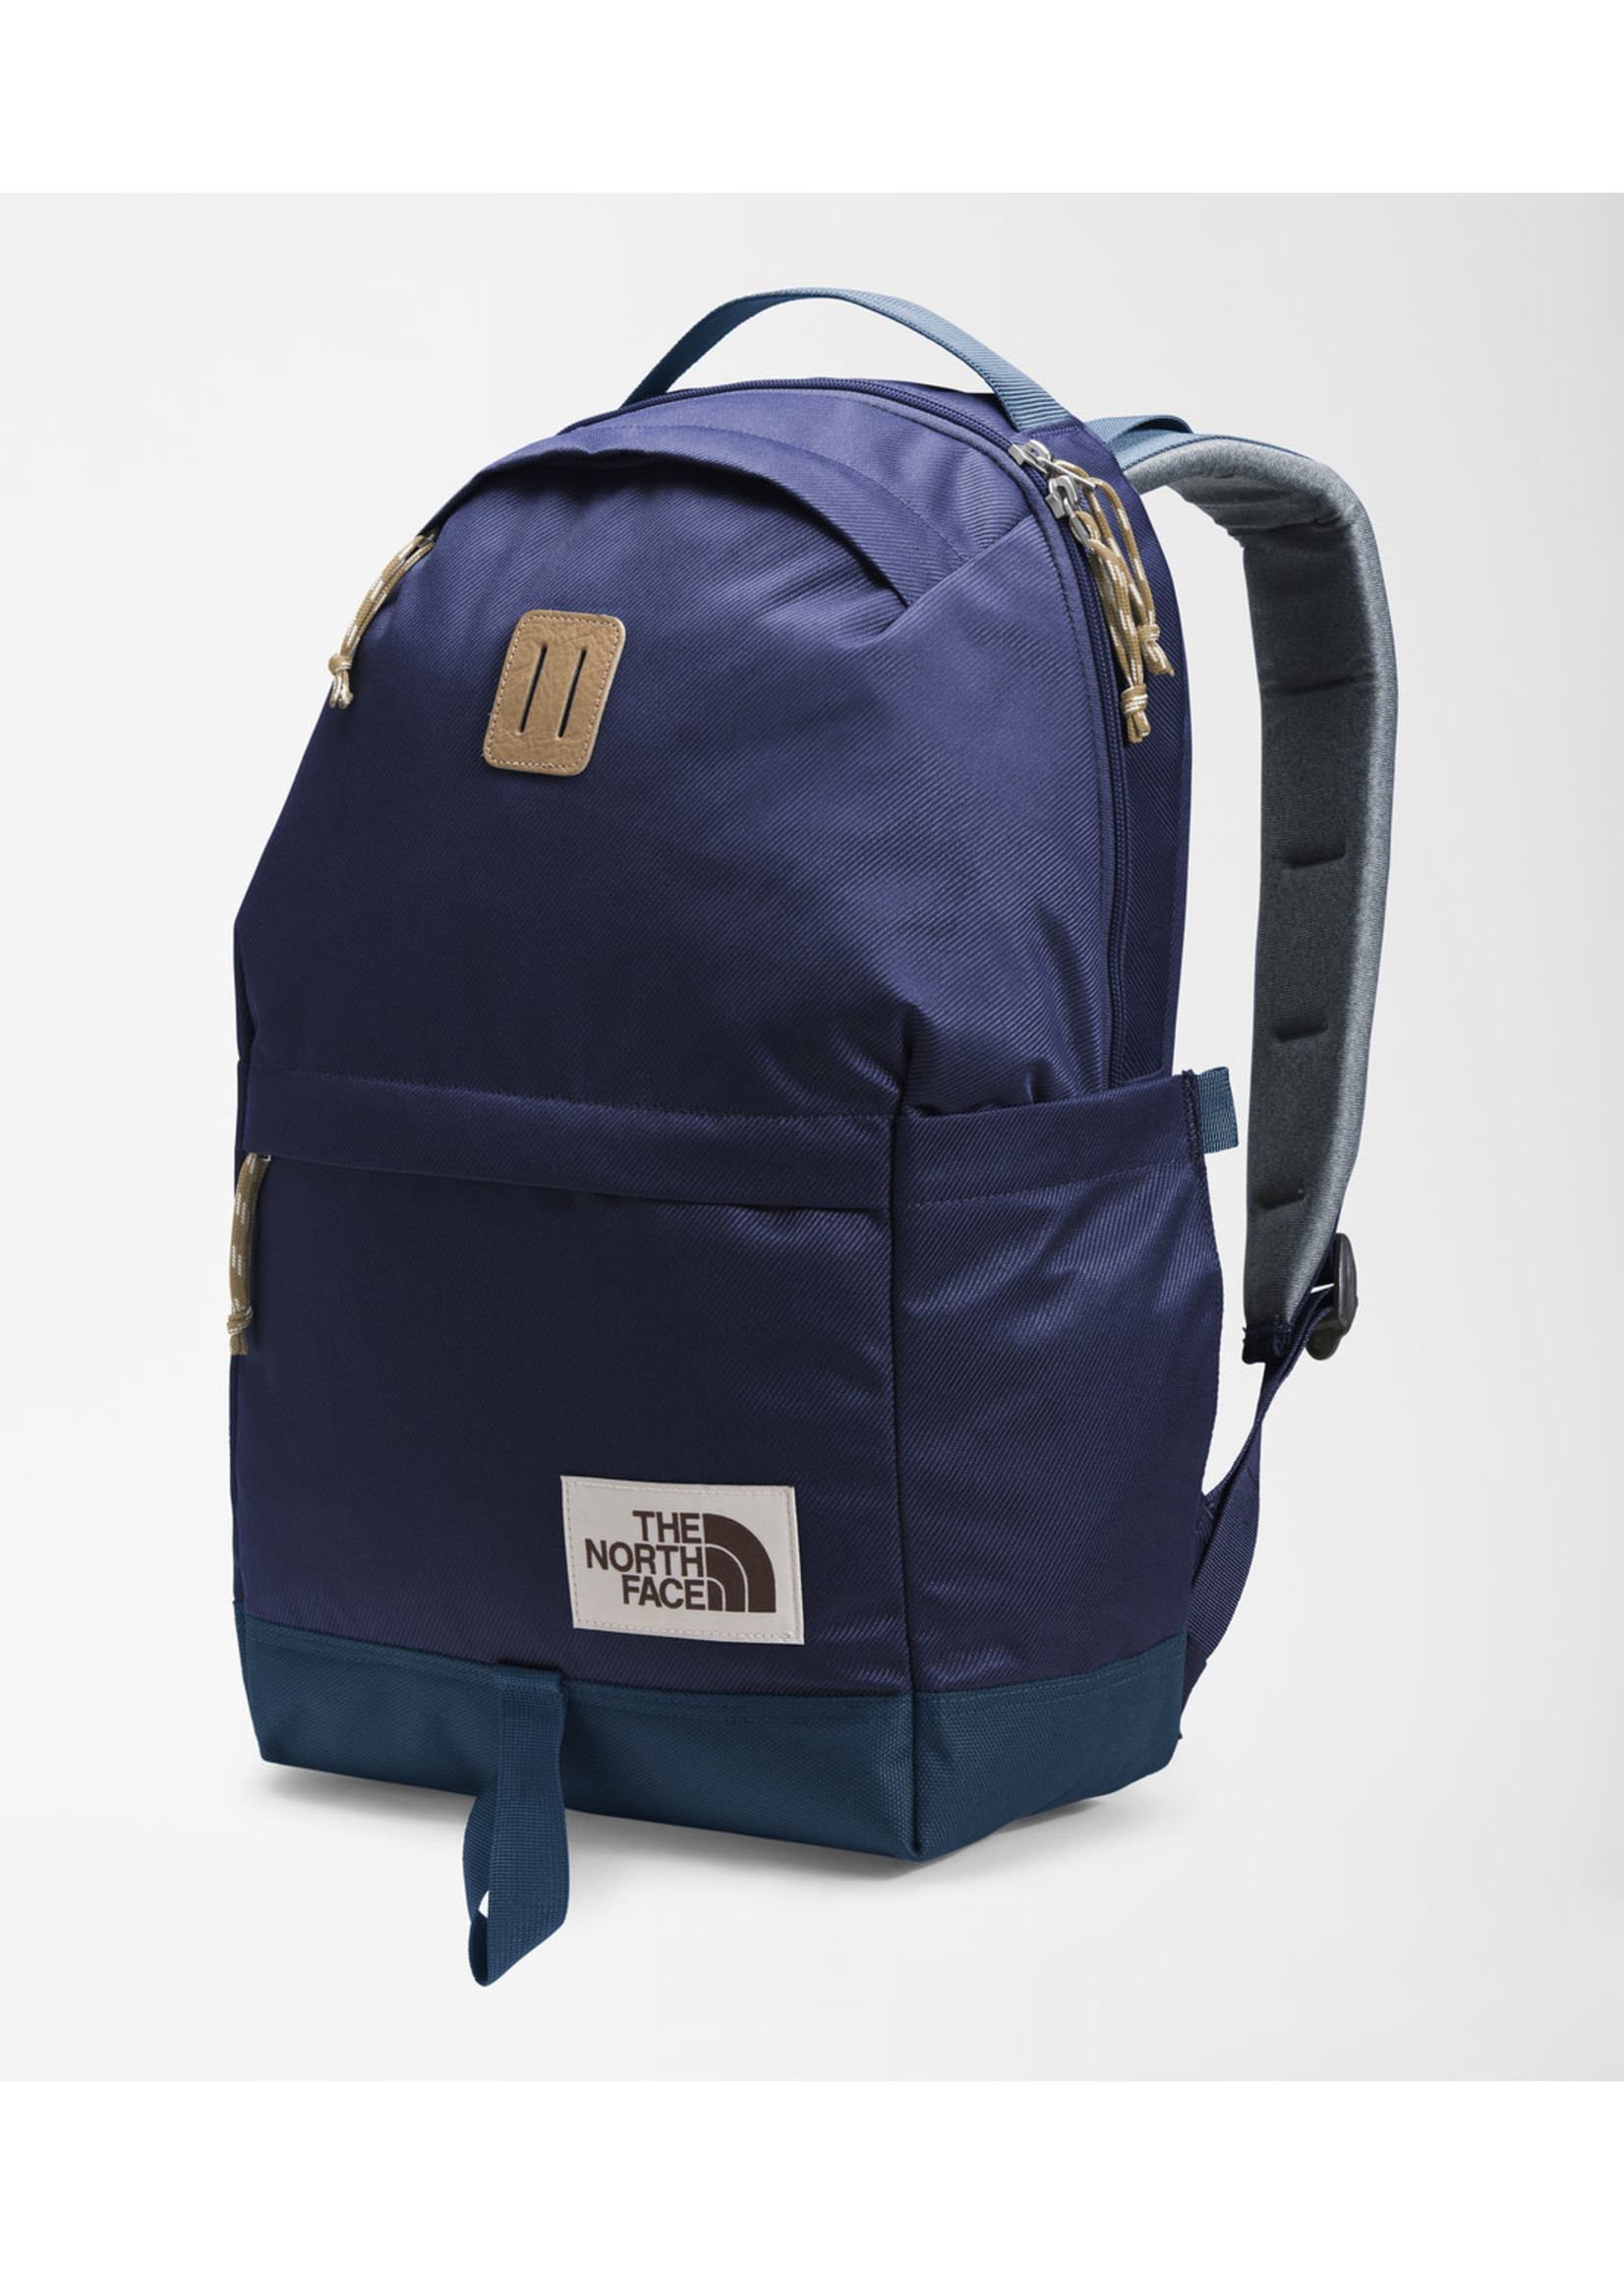 THE NORTH FACE Sac à dos Daypack